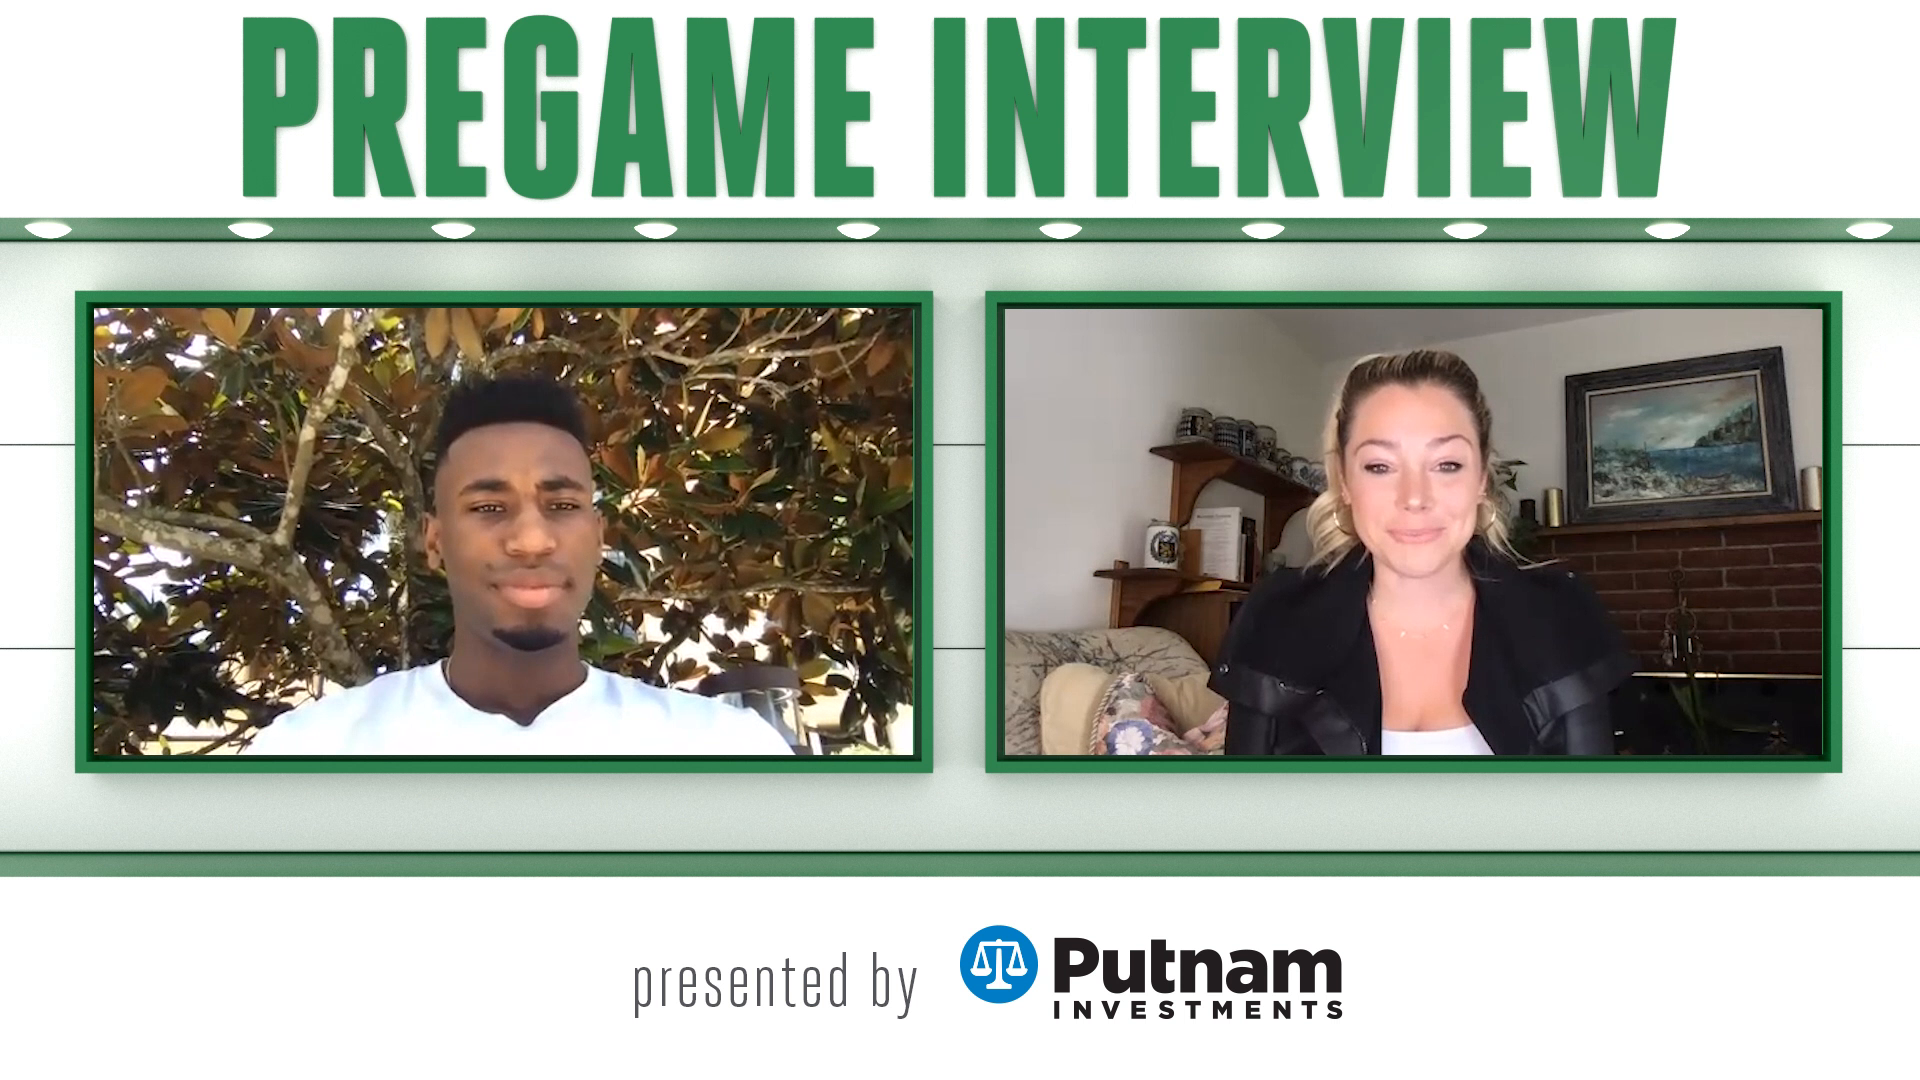 5/5 Putnam Pregame Interview: 'Make Winning Plays'